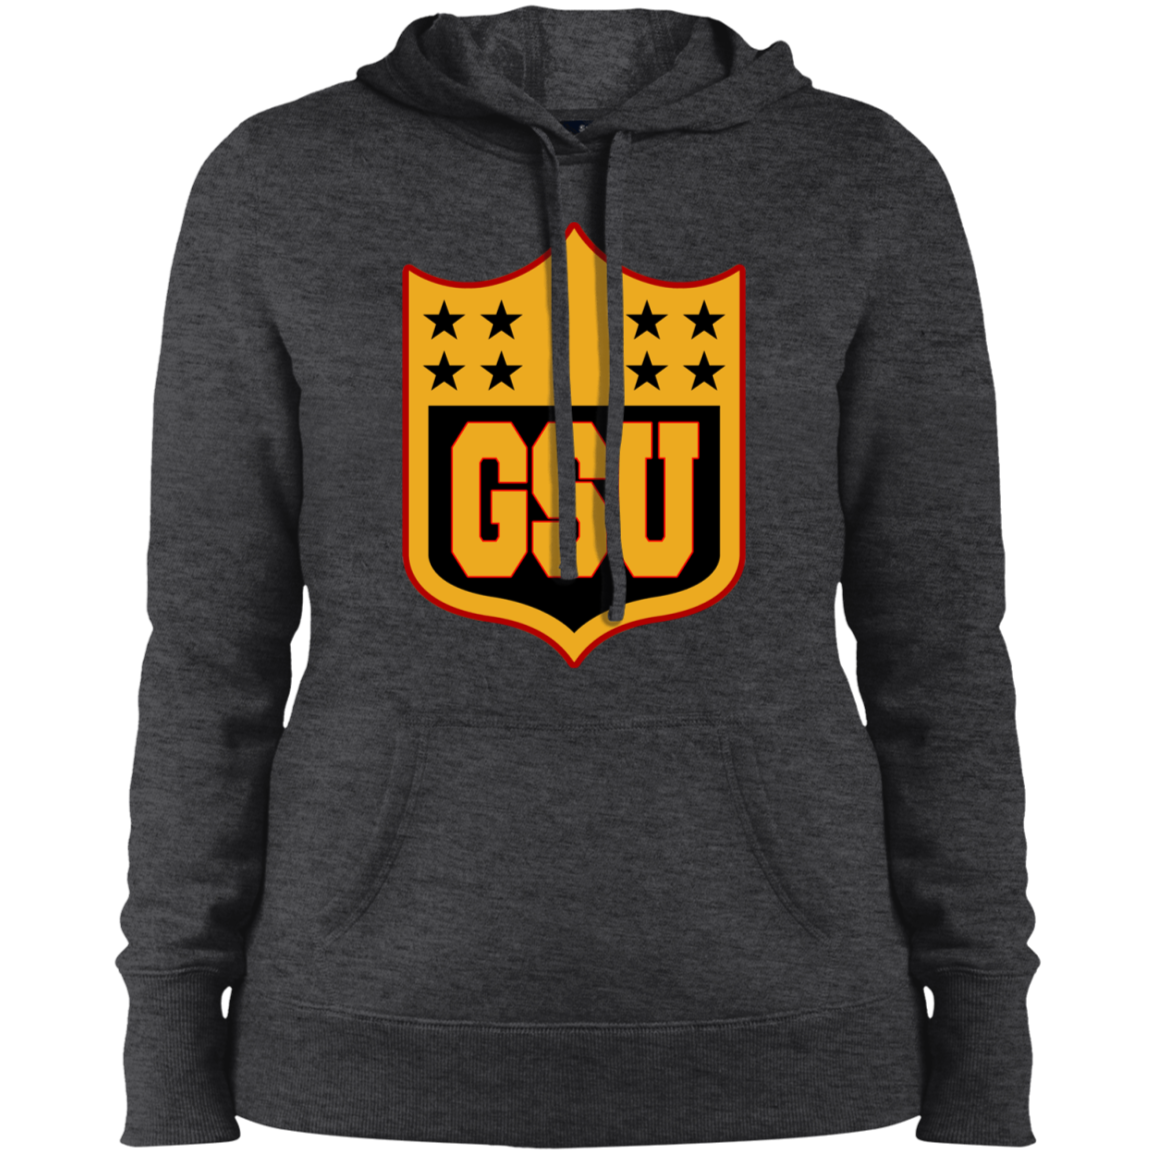 GSU Stars Hooded Sweatshirt